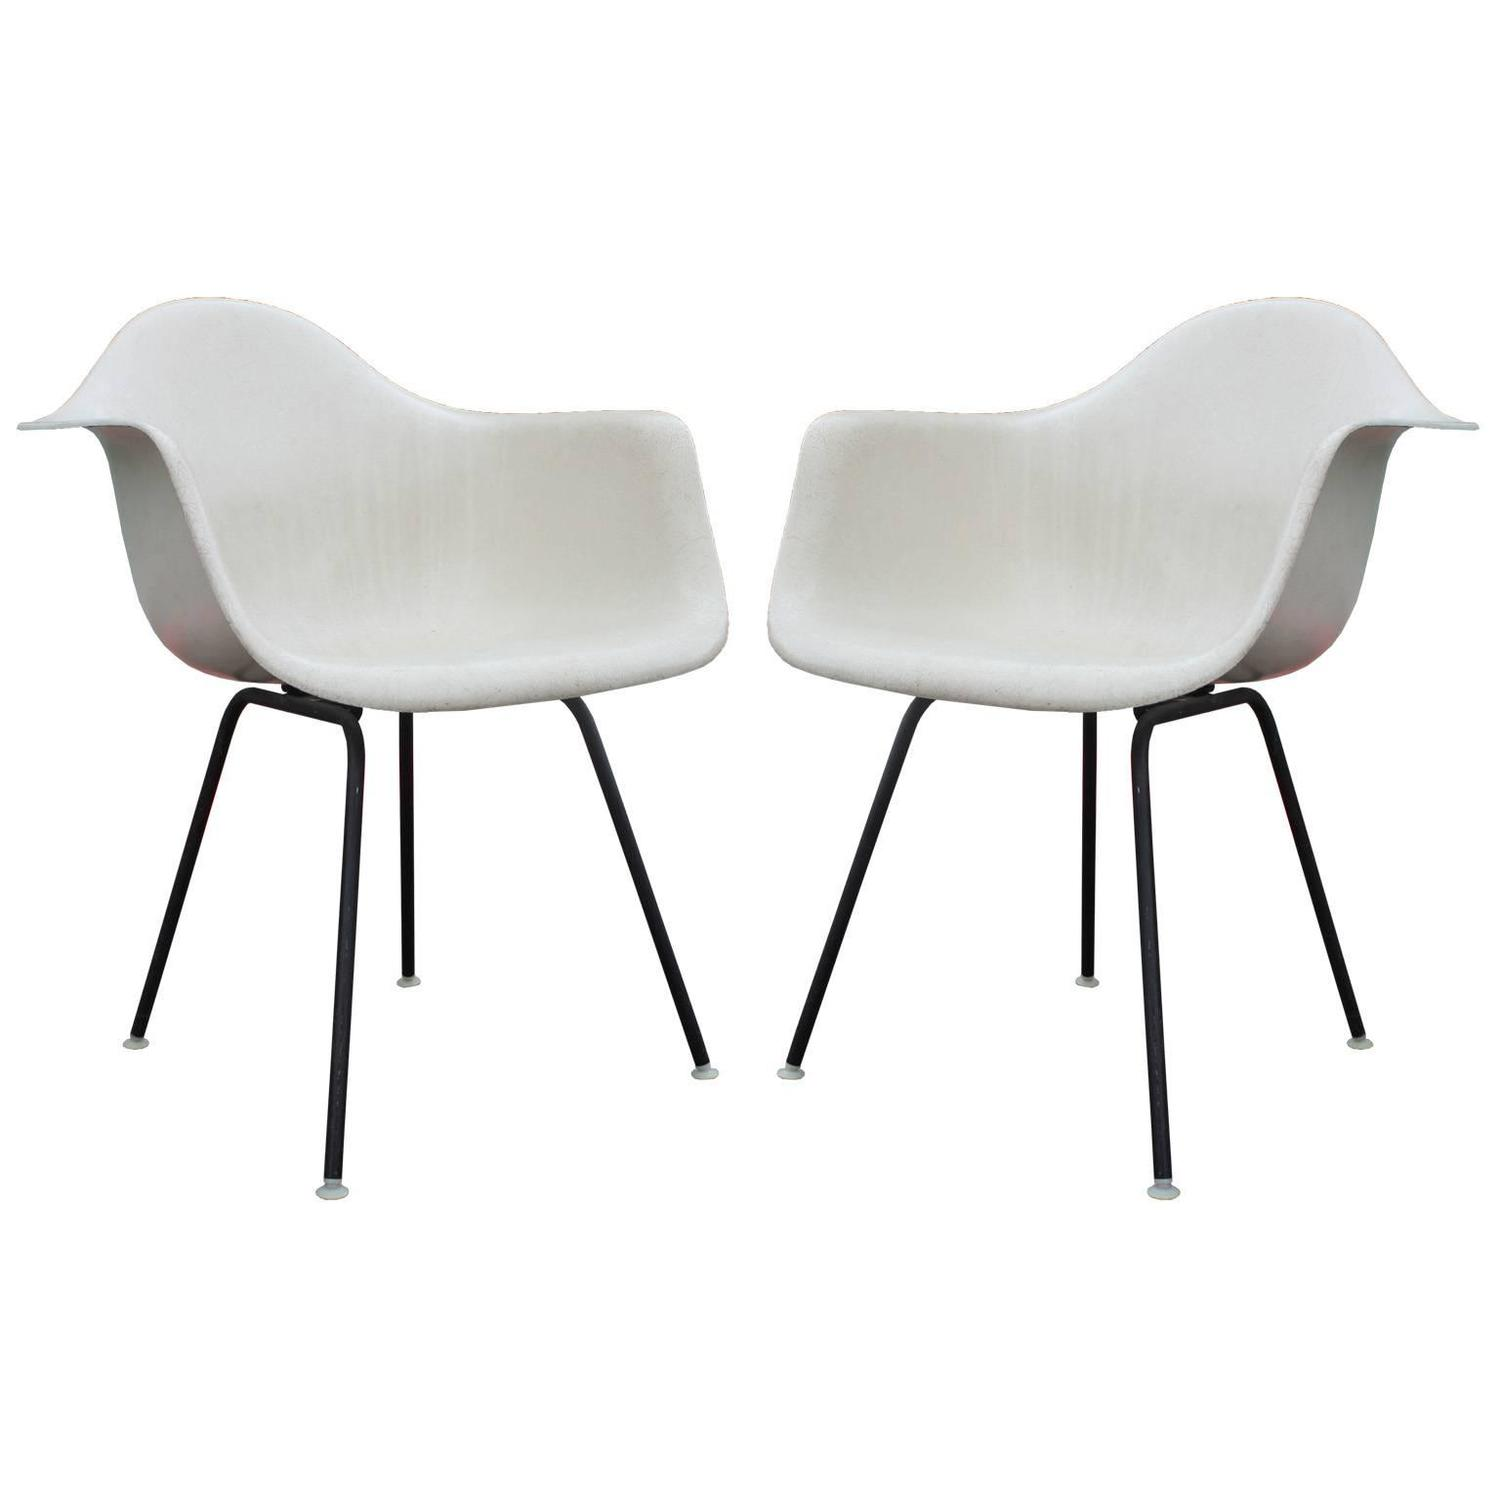 Iconic Pair of Early Eames Fiberglass Modern Bucket Chairs in